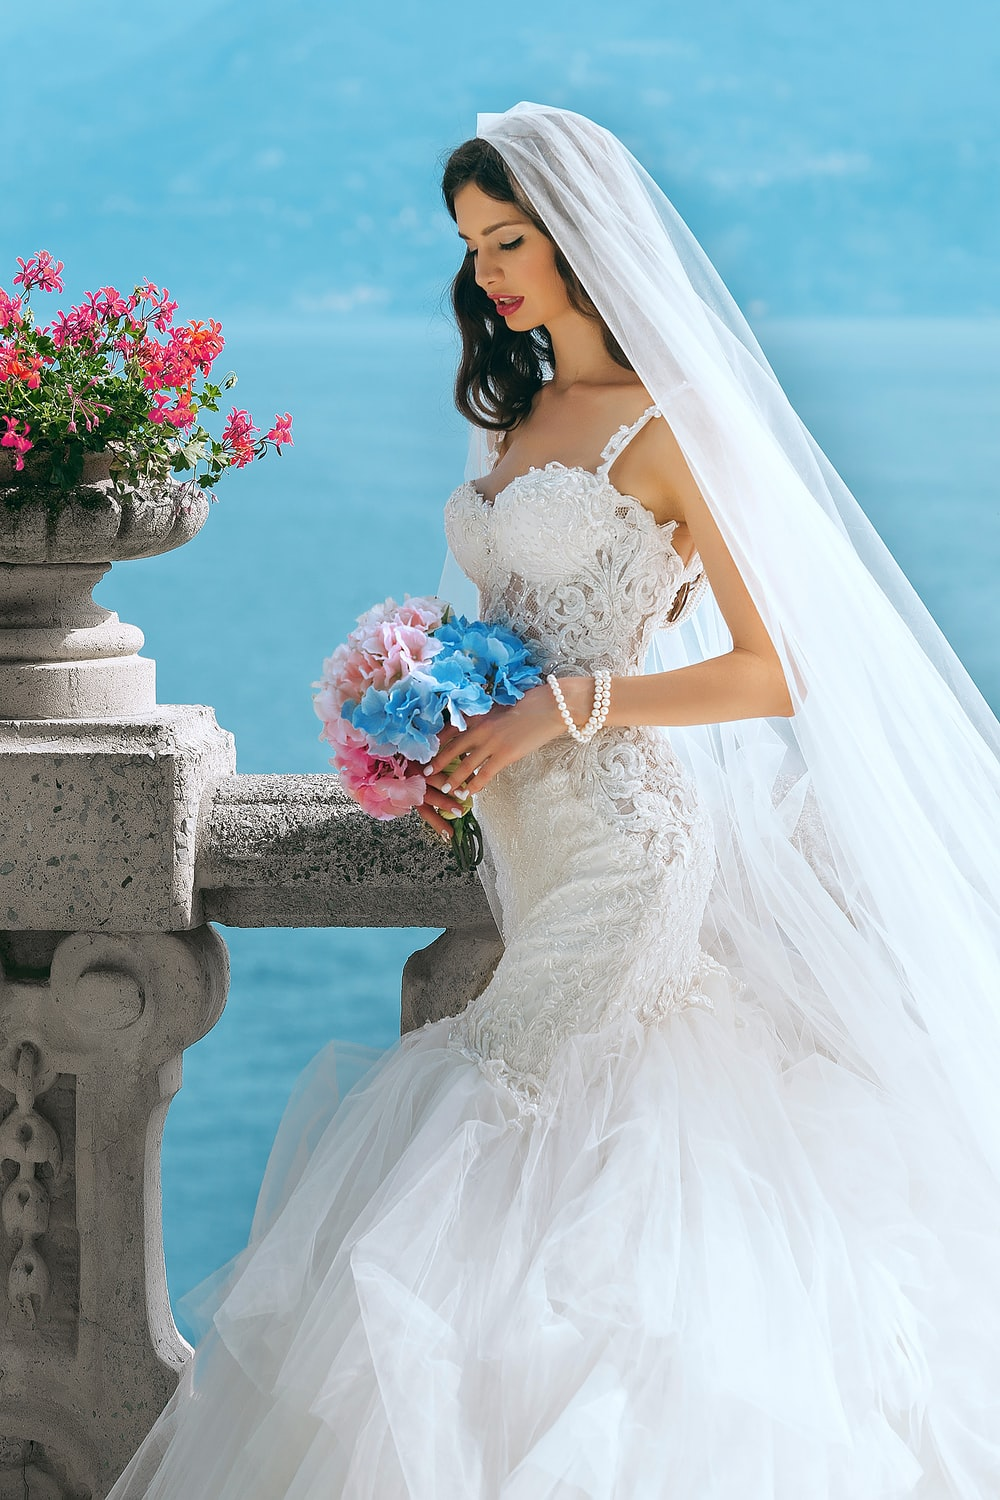 woman in wedding dress while holding flower during daytime